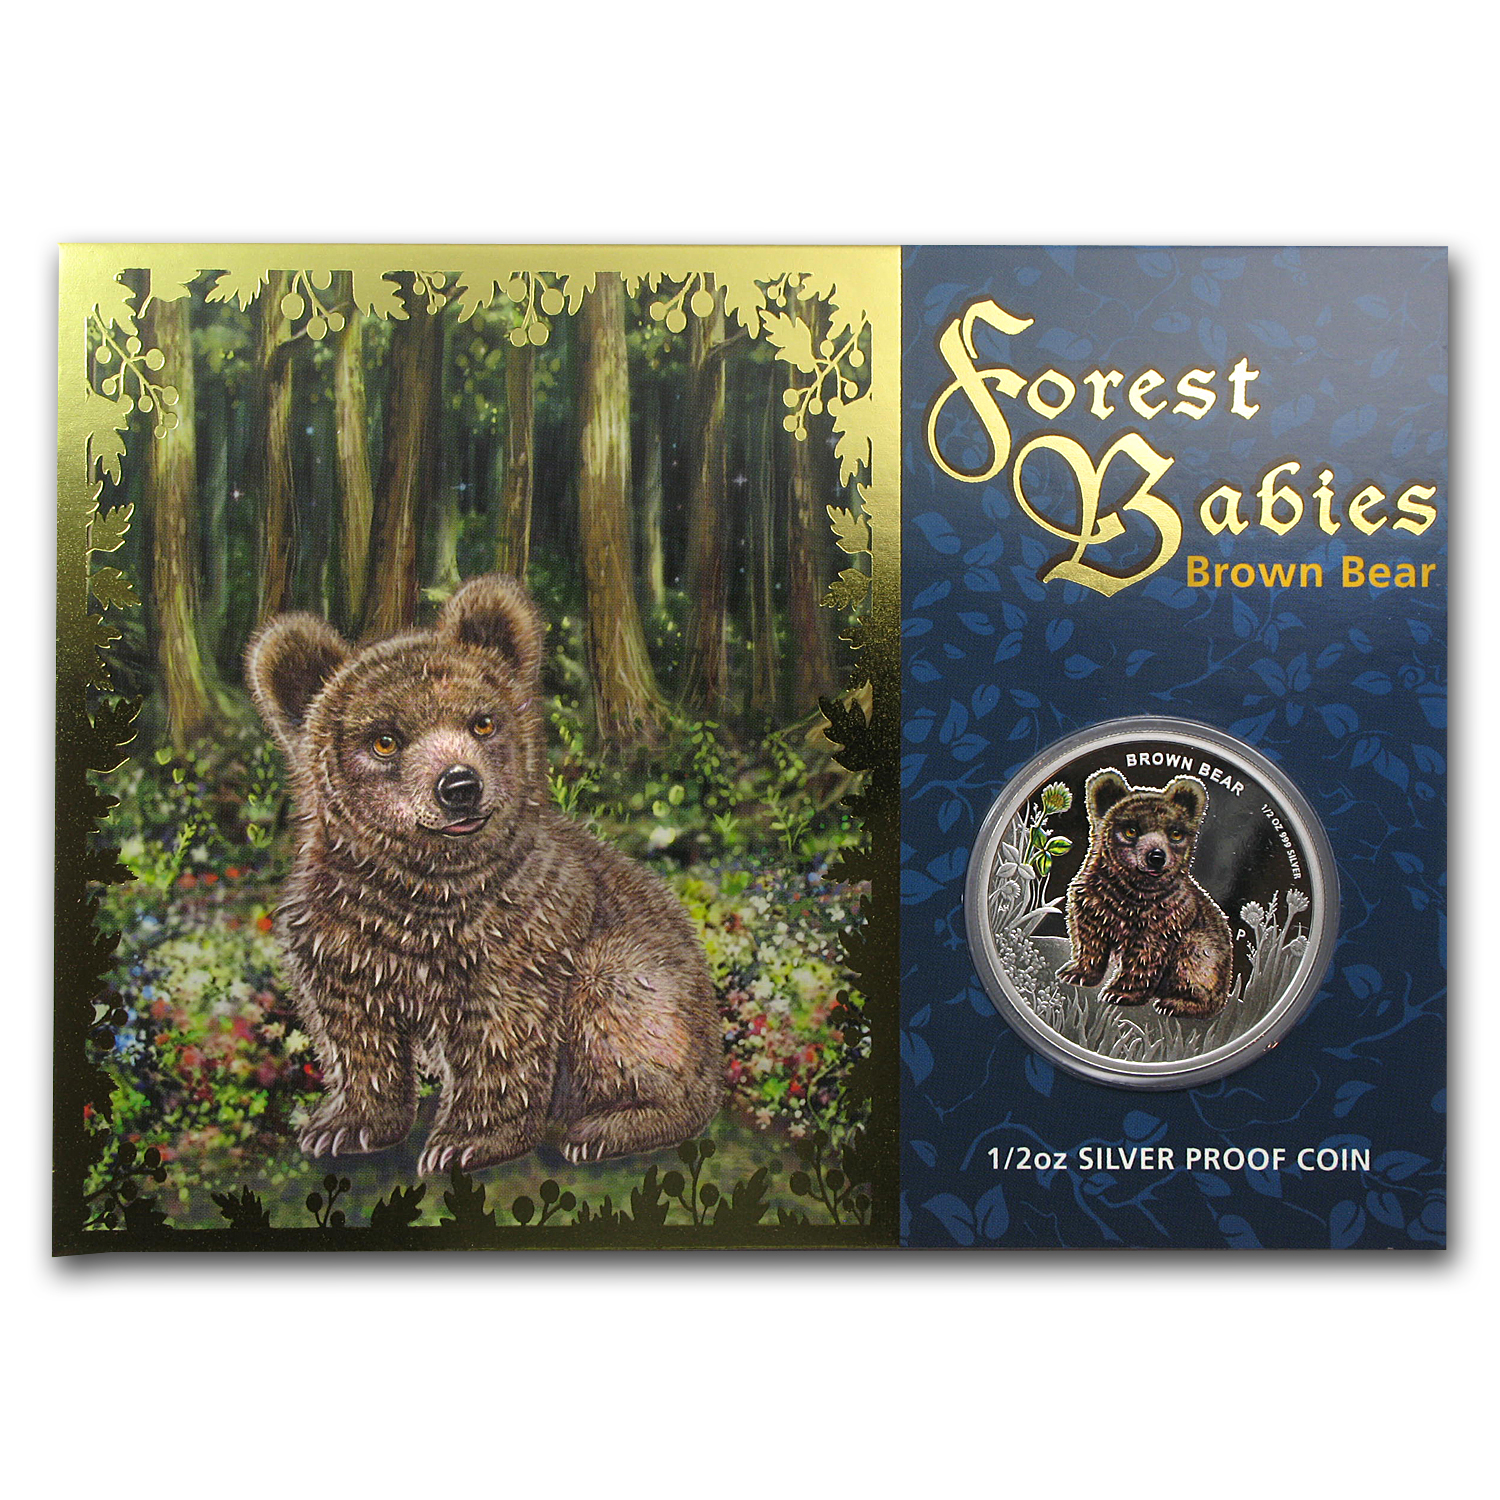 2013 Tuvalu 1/2 oz Proof Silver Forest Babies (Brown Bear)